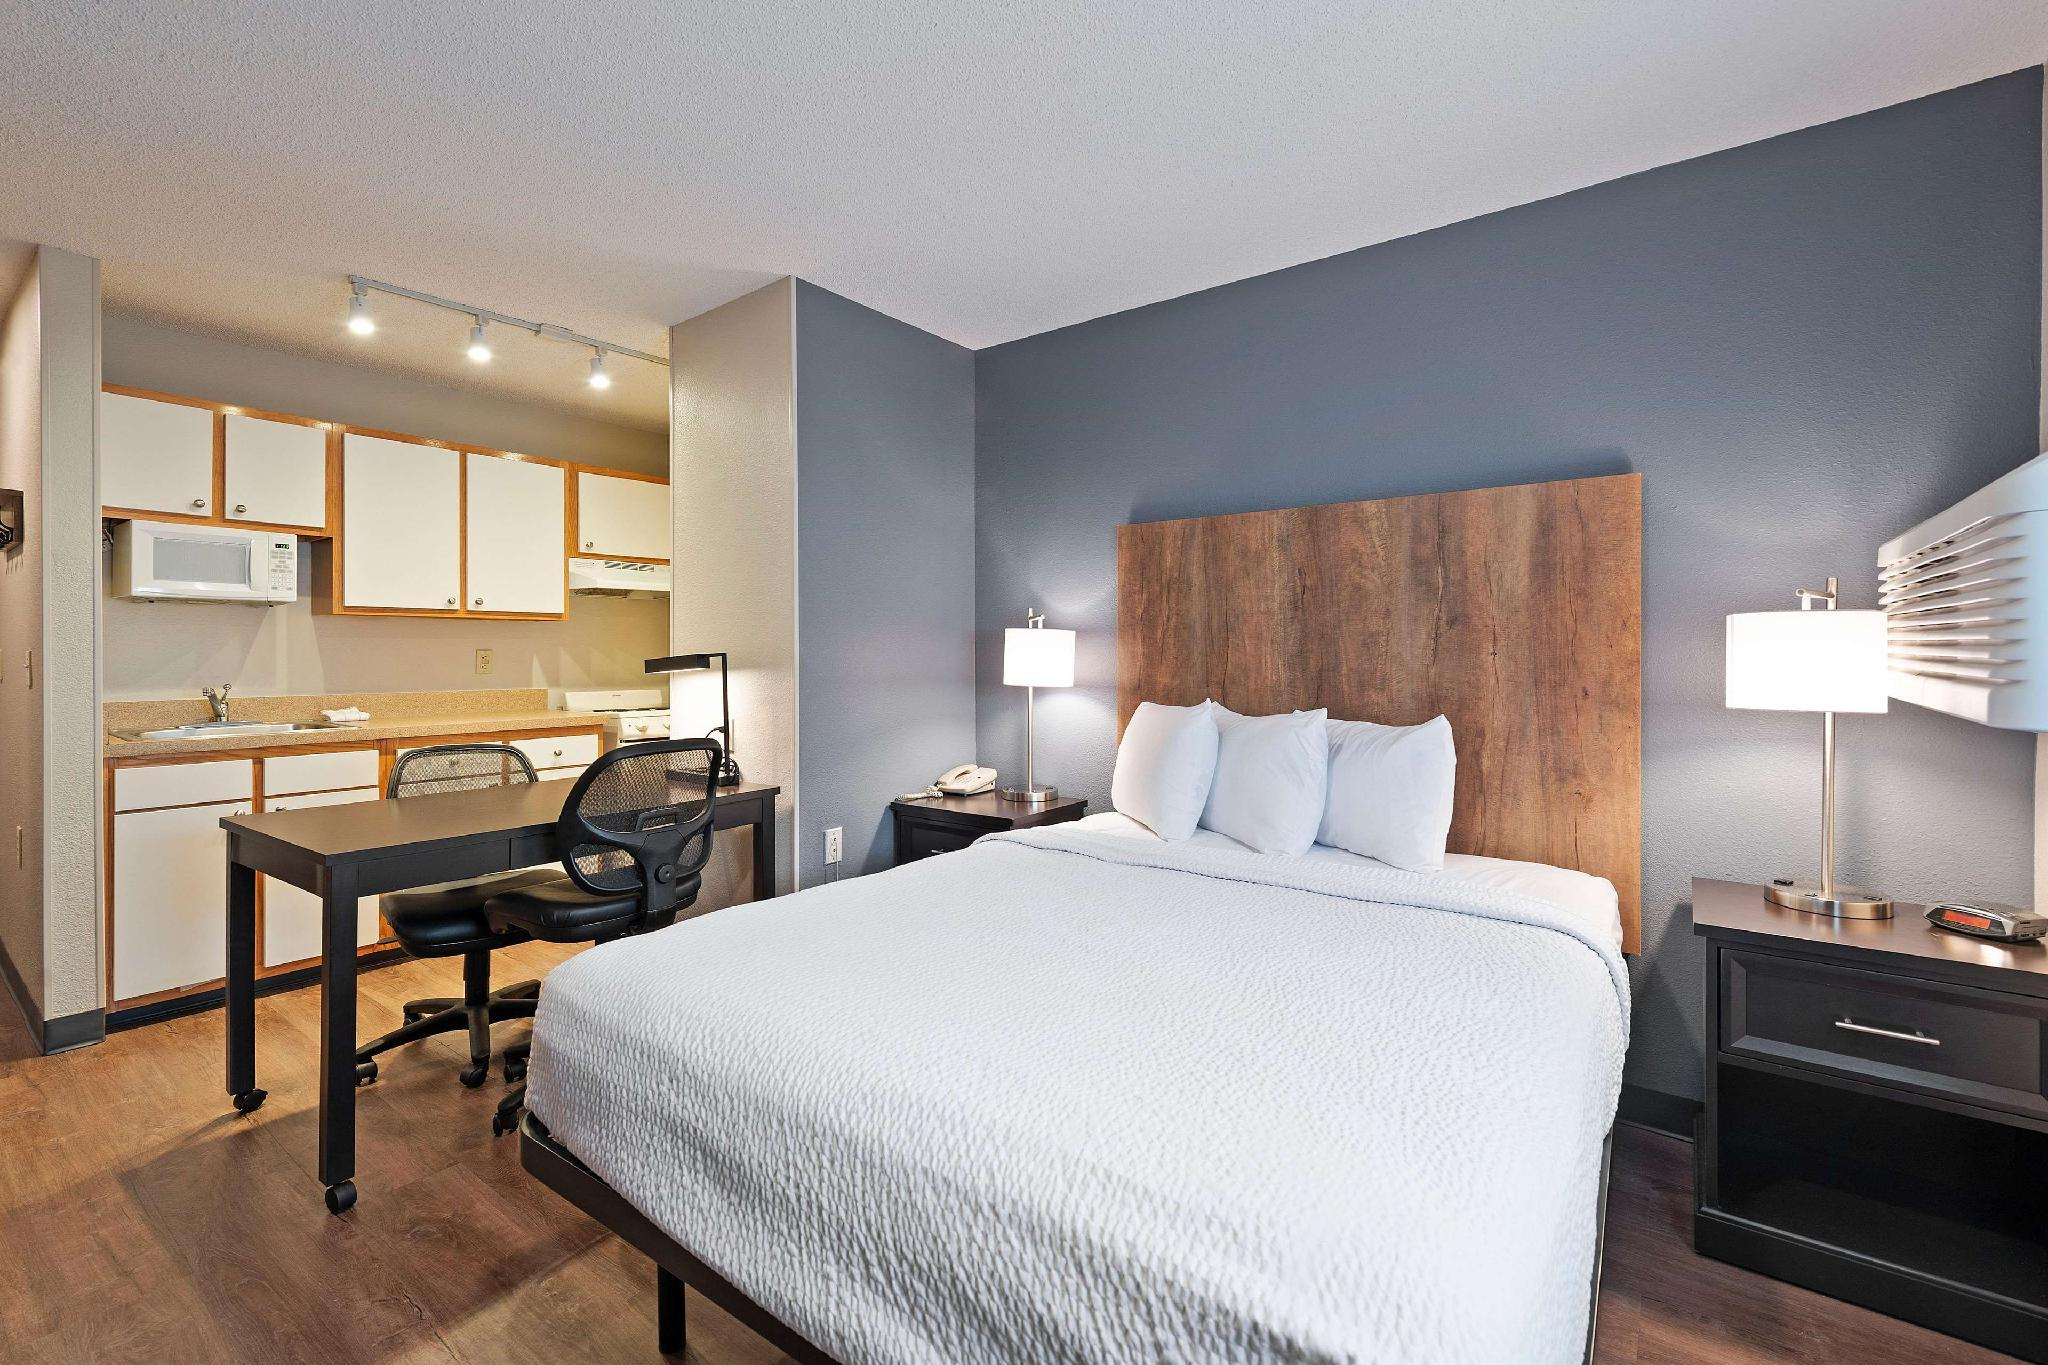 Extended Stay America - Charlotte - University Place - E McCullough Dr